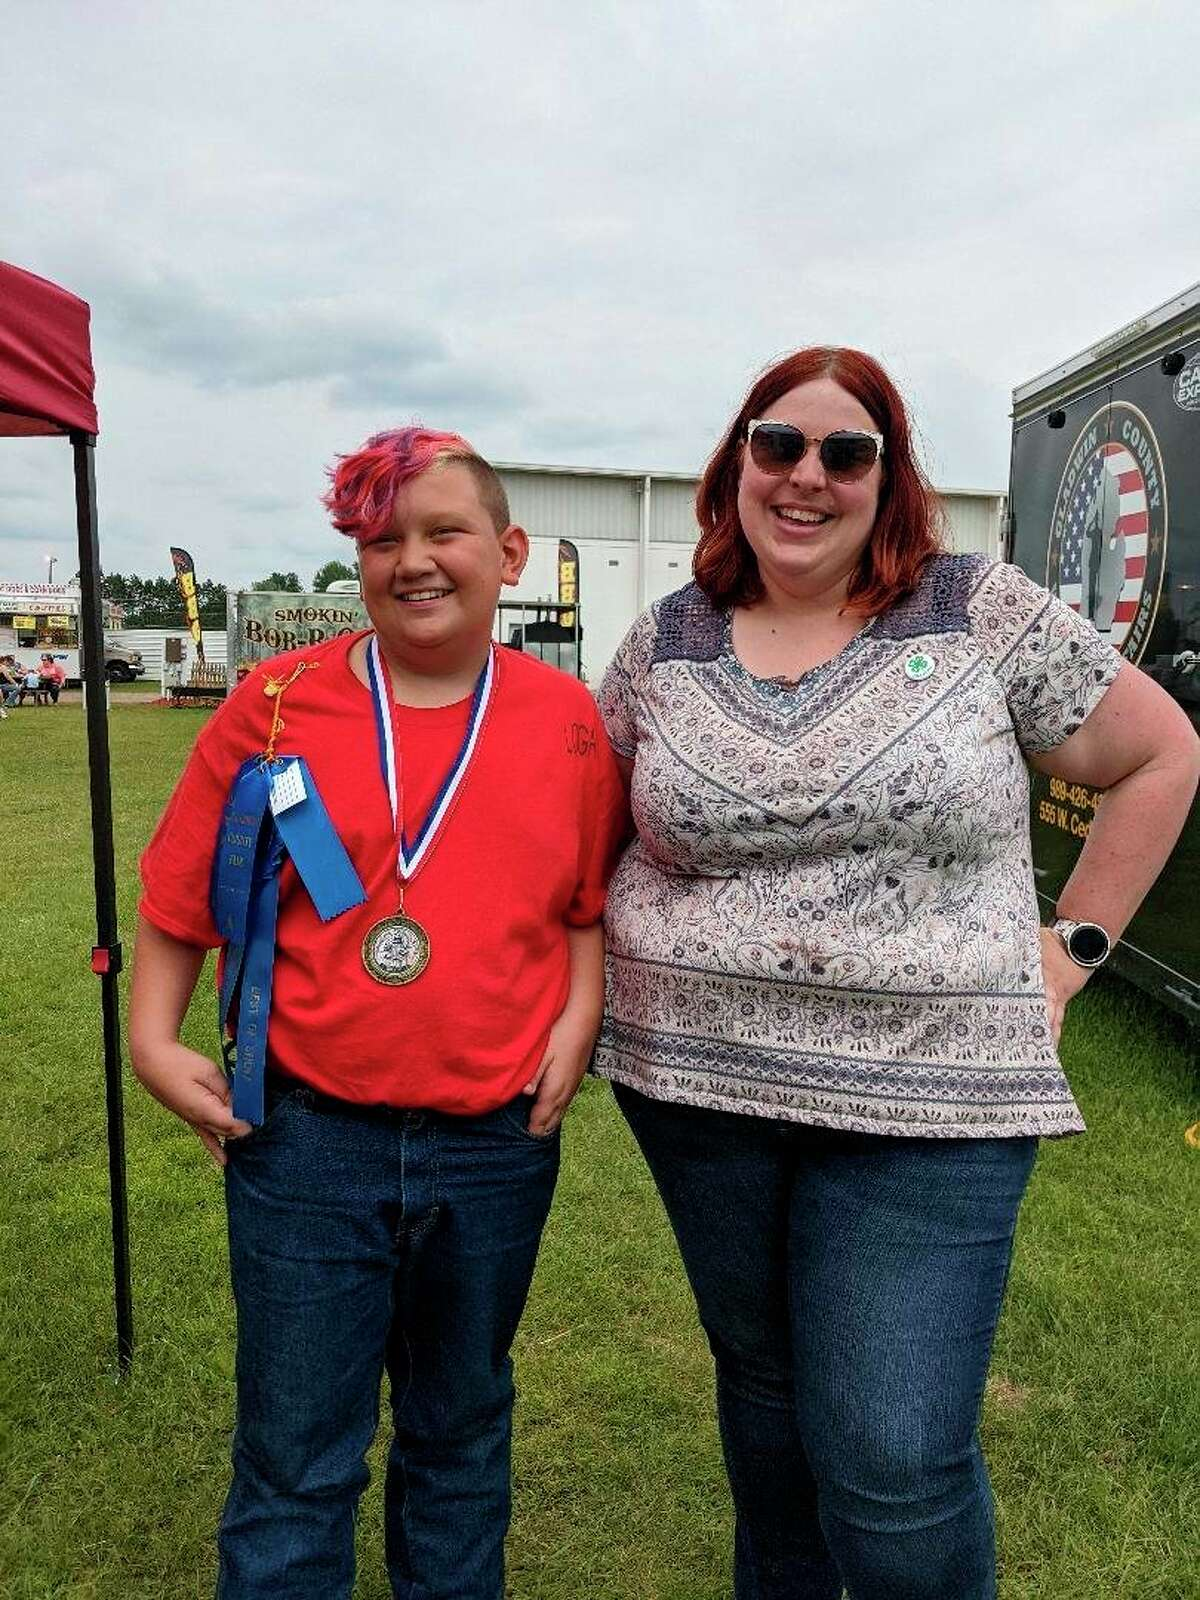 Logan Trevillian, 12, left with Missy Preston, Gladwin County 4H coordinator at the Gladwin County Fair last week. Trevillian earned $500 for his cookies at a 4H baking contest. The money joins his savings for a farm-to-table restaurant. He is saving to buy 100 acres to house livestock and crops. (Photo by Tereasa Nims/for the Daily News)